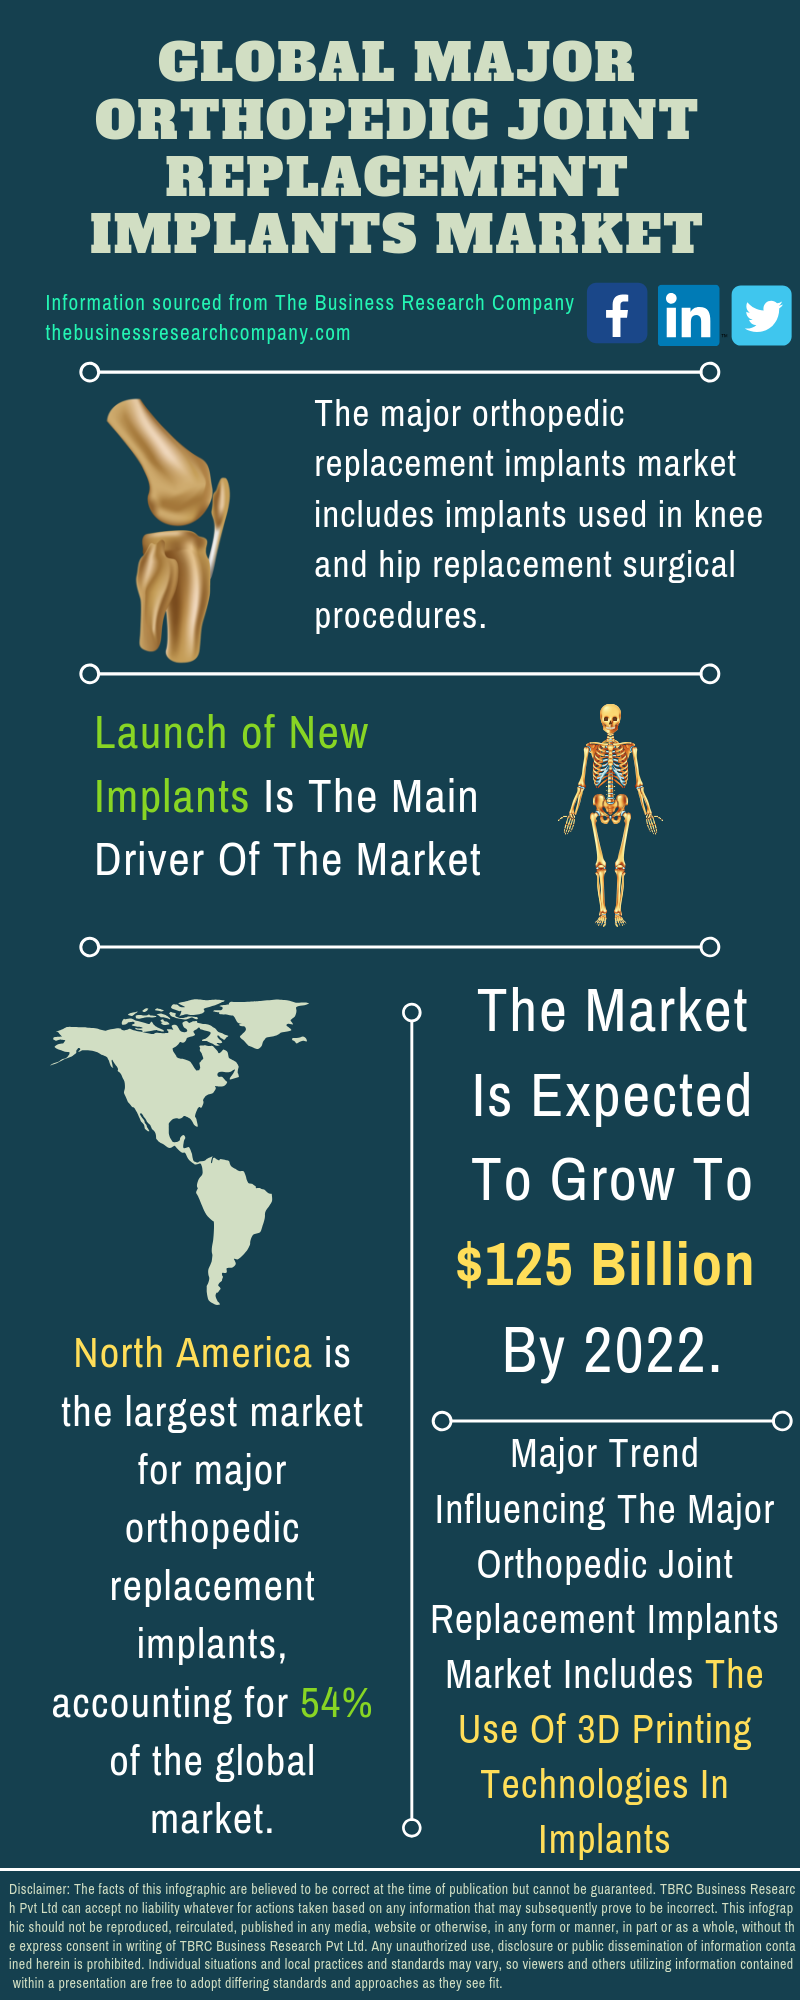 Major Orthopedic Joint Replacement Implants Market